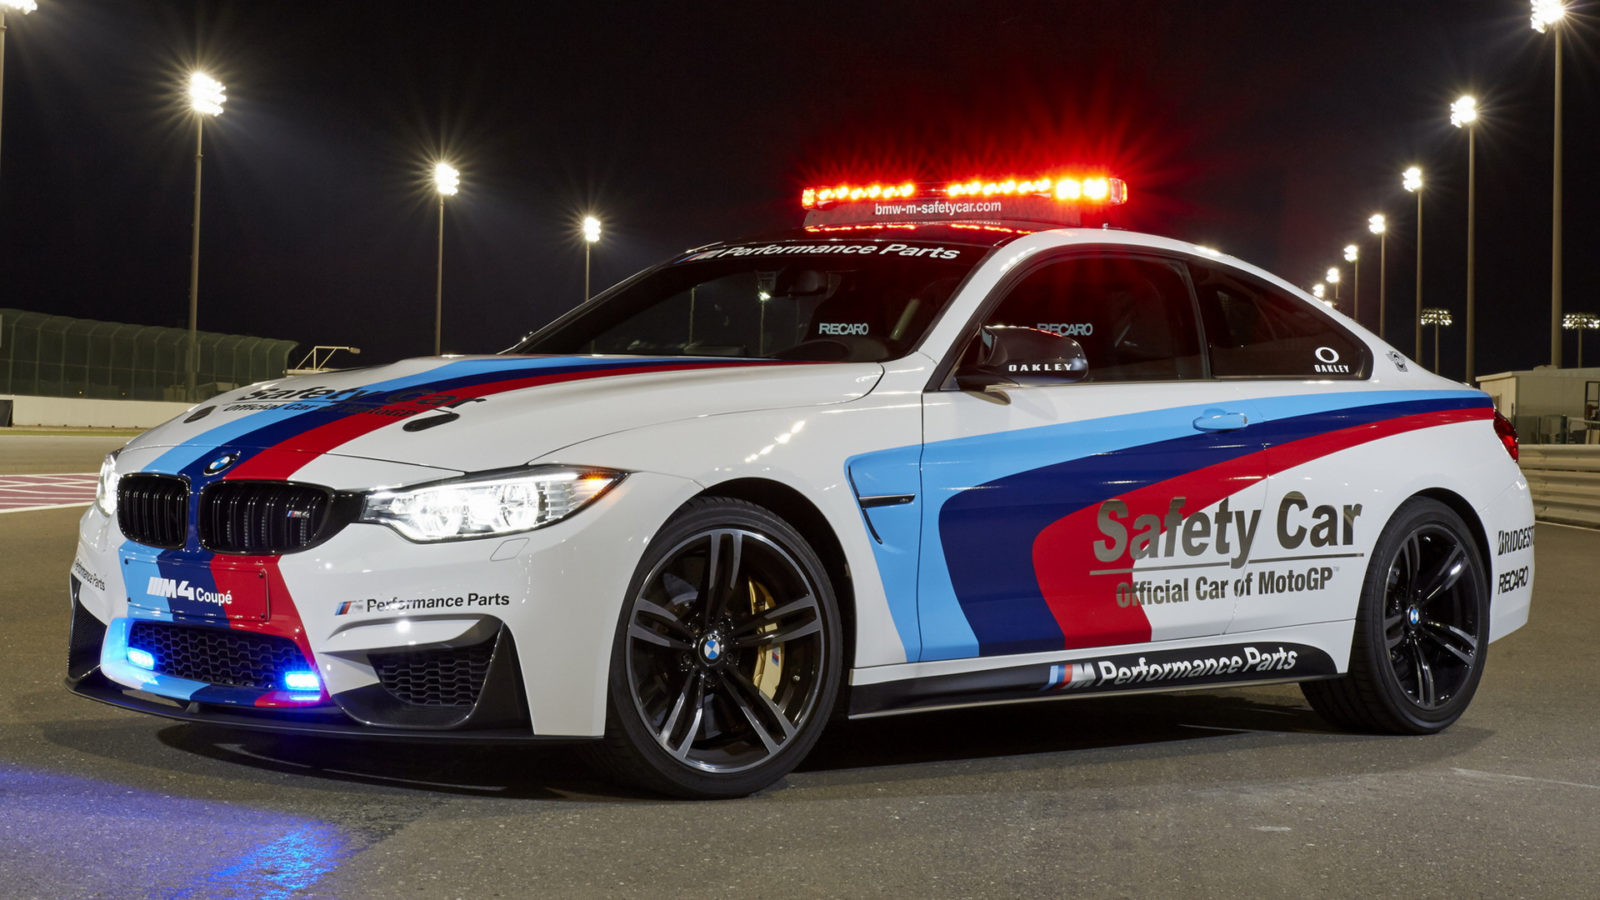 2014 Bmw M4 Coupe Motogp Safety Car Wallpapers Viruscars